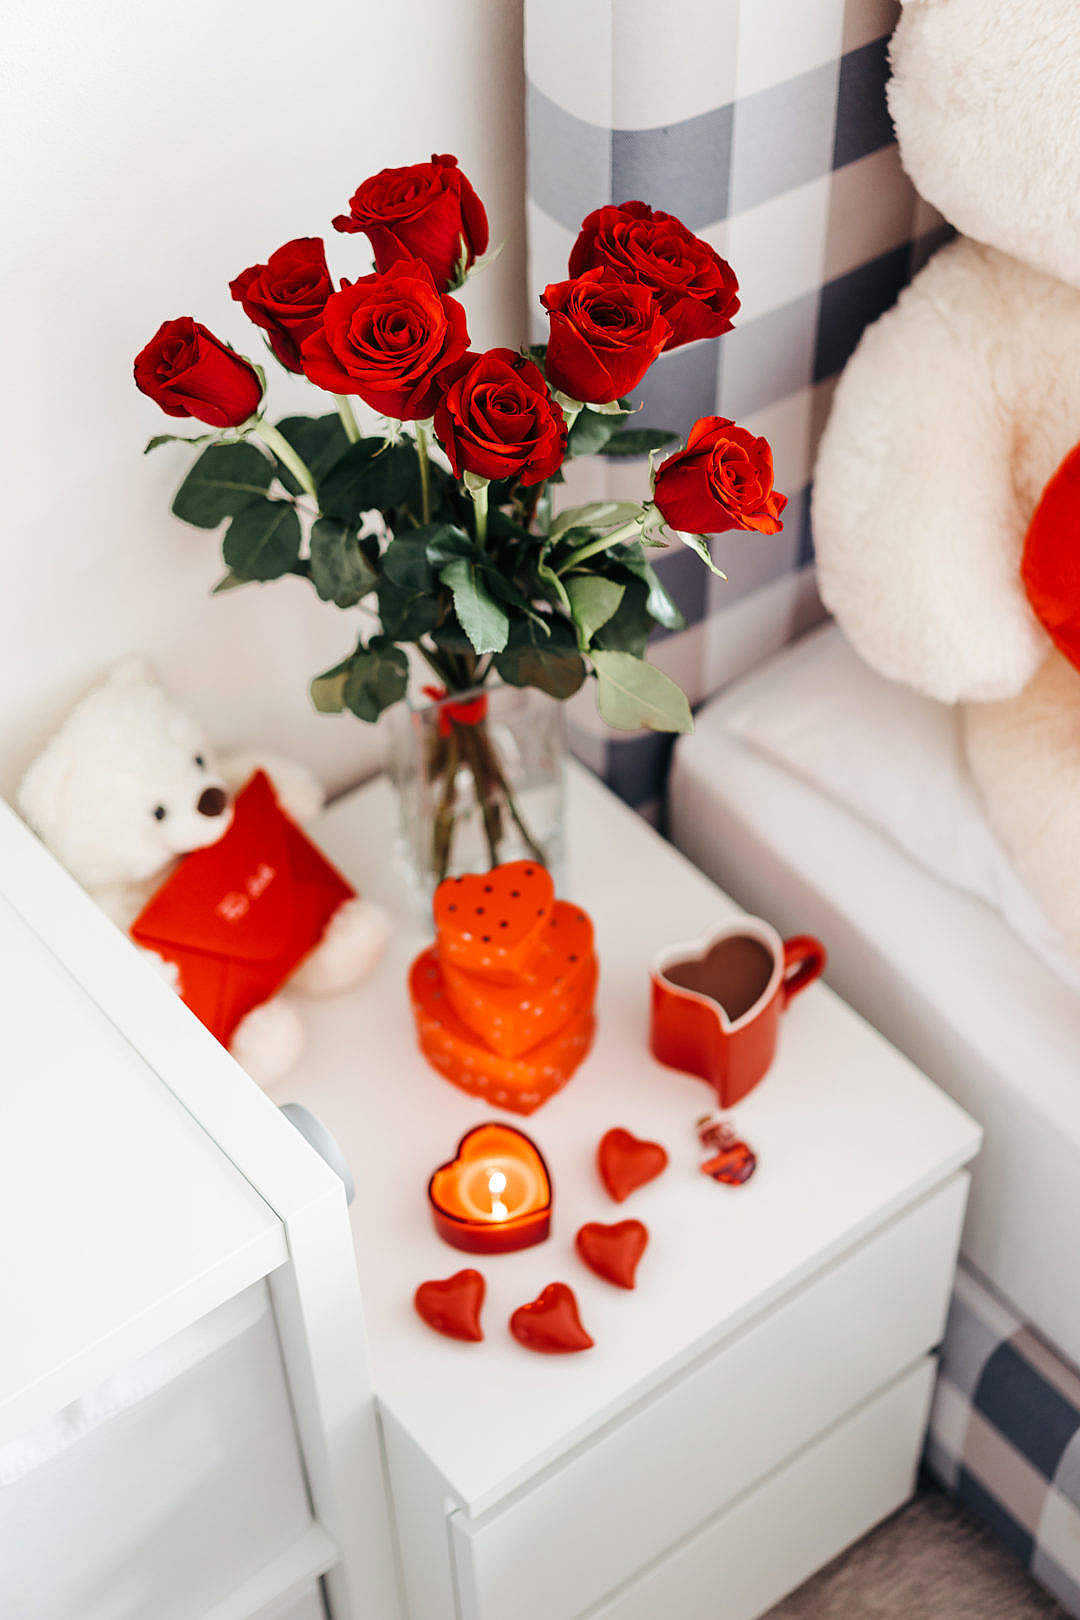 Download A Bouquet of Red Roses And Other Romantic Gifts on a Bedside Table FREE Stock Photo